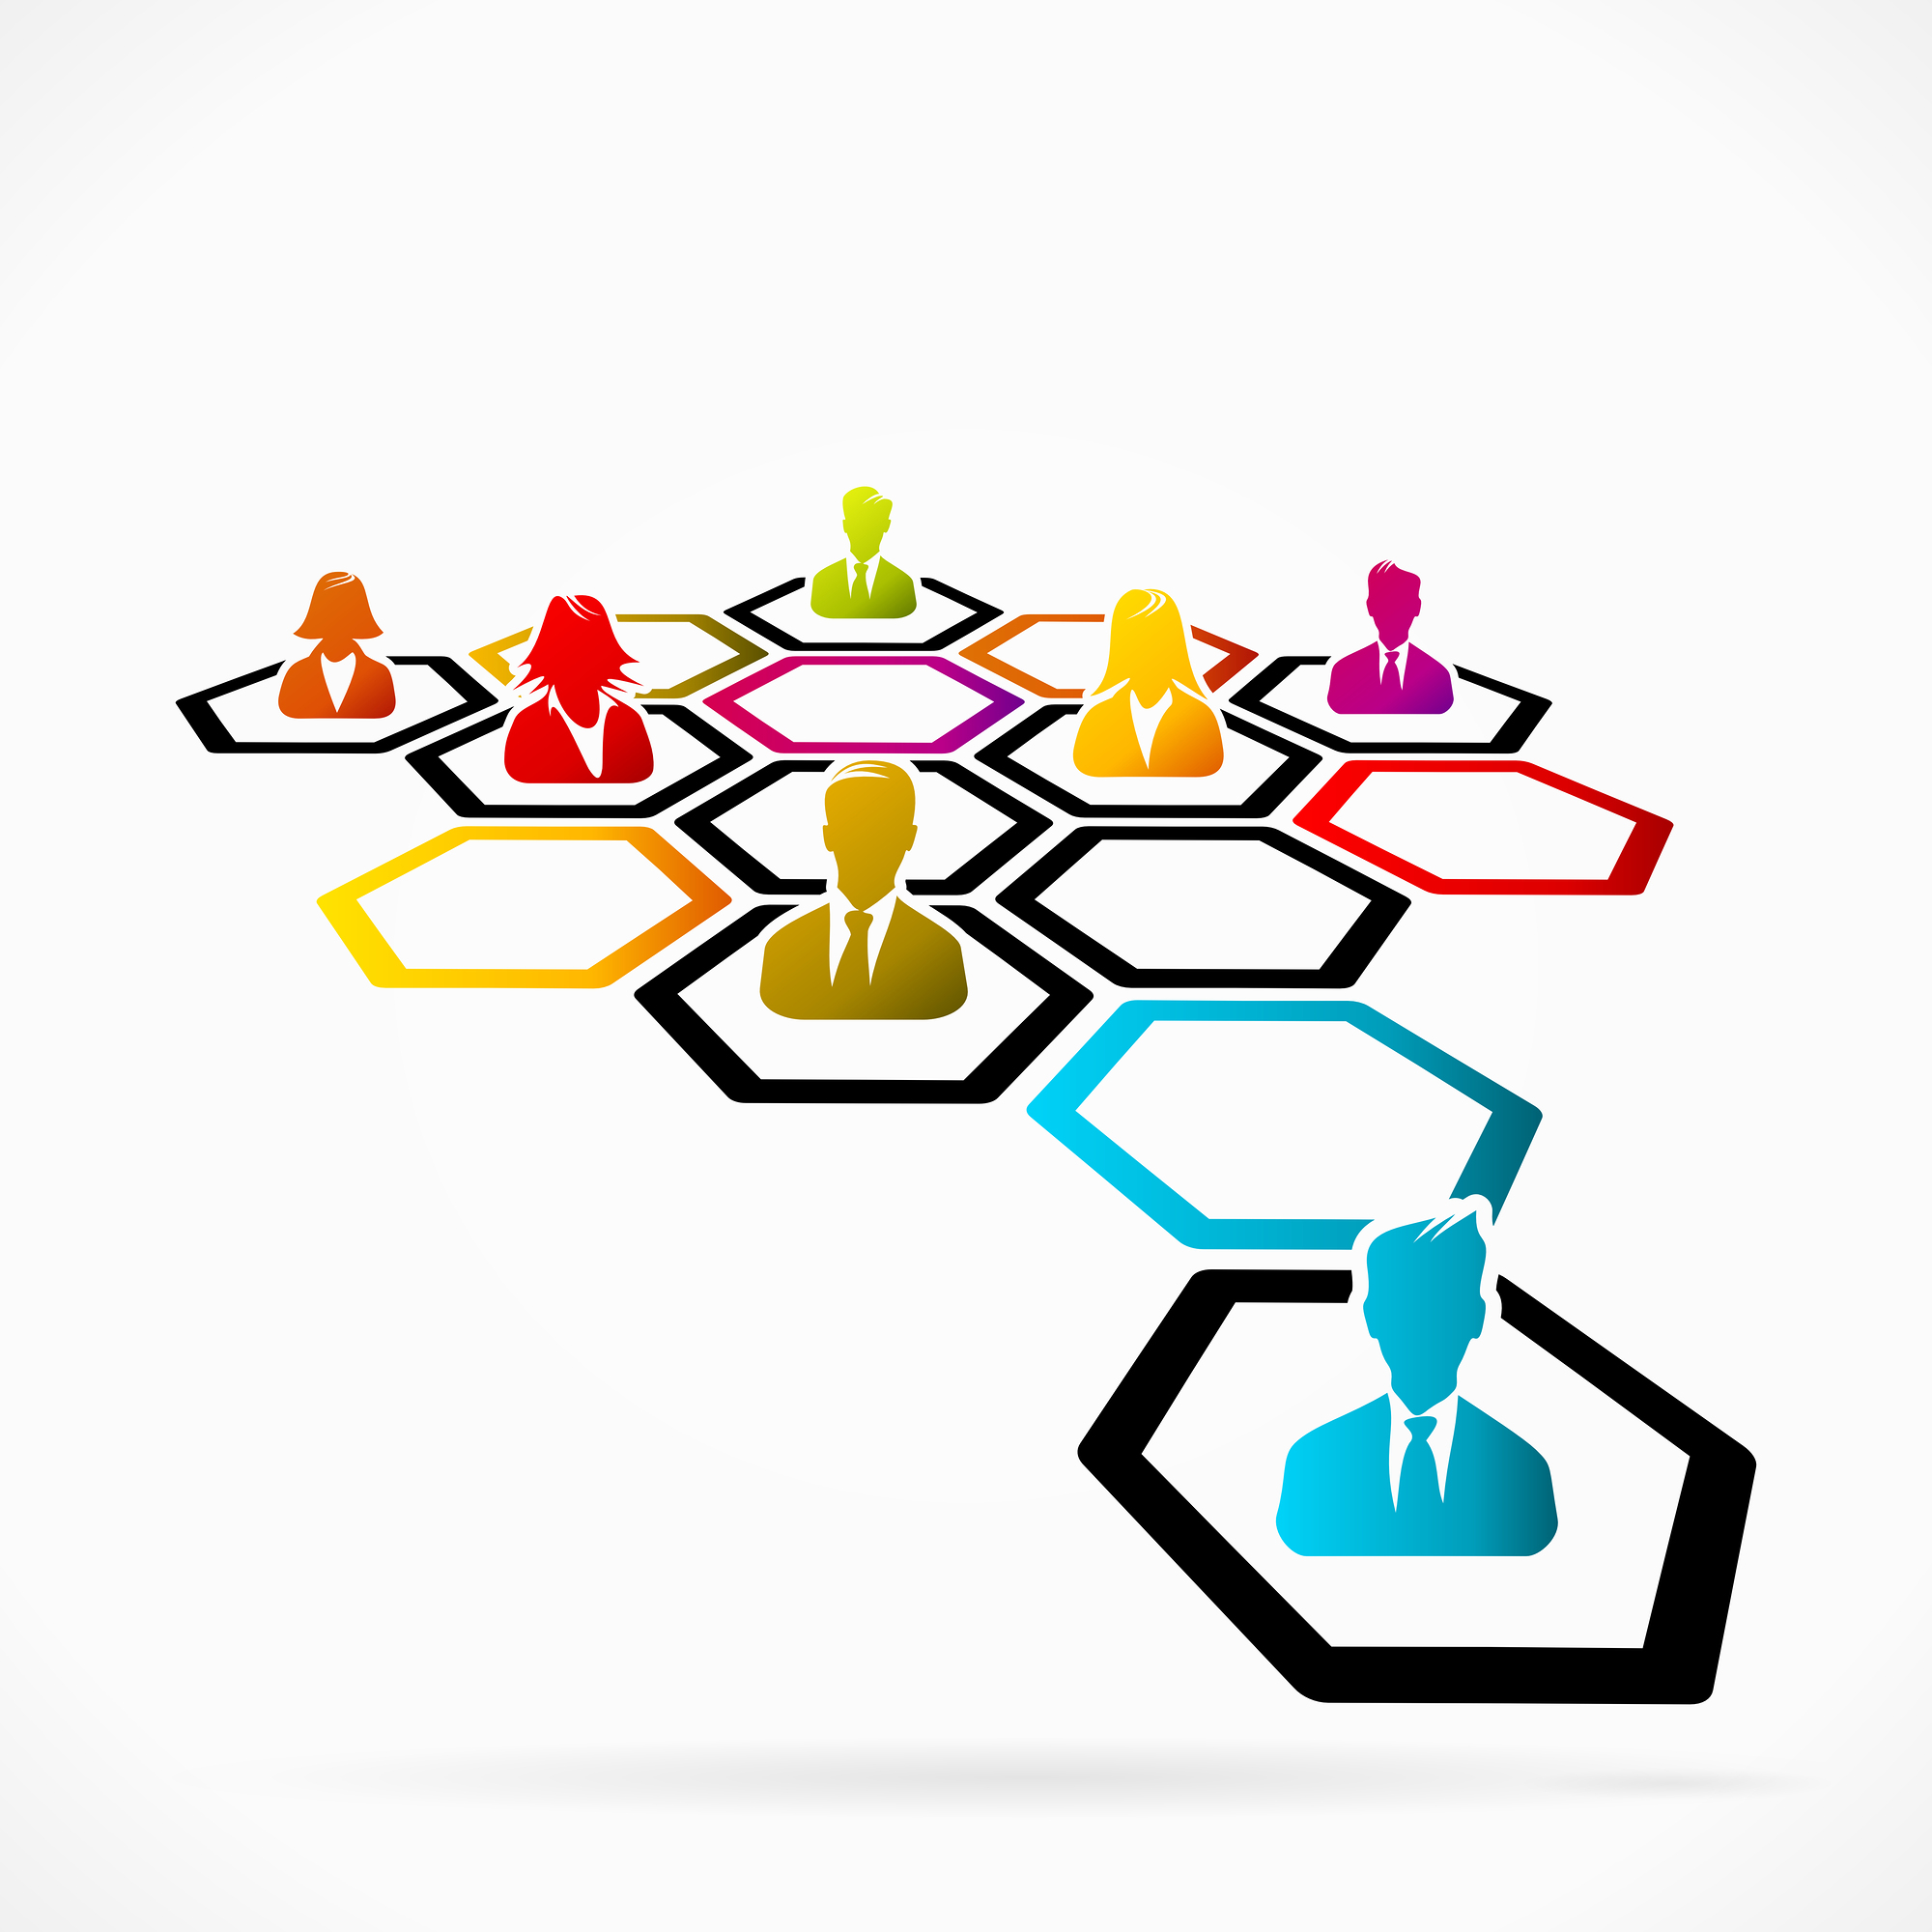 Business networking as a method of generating new business